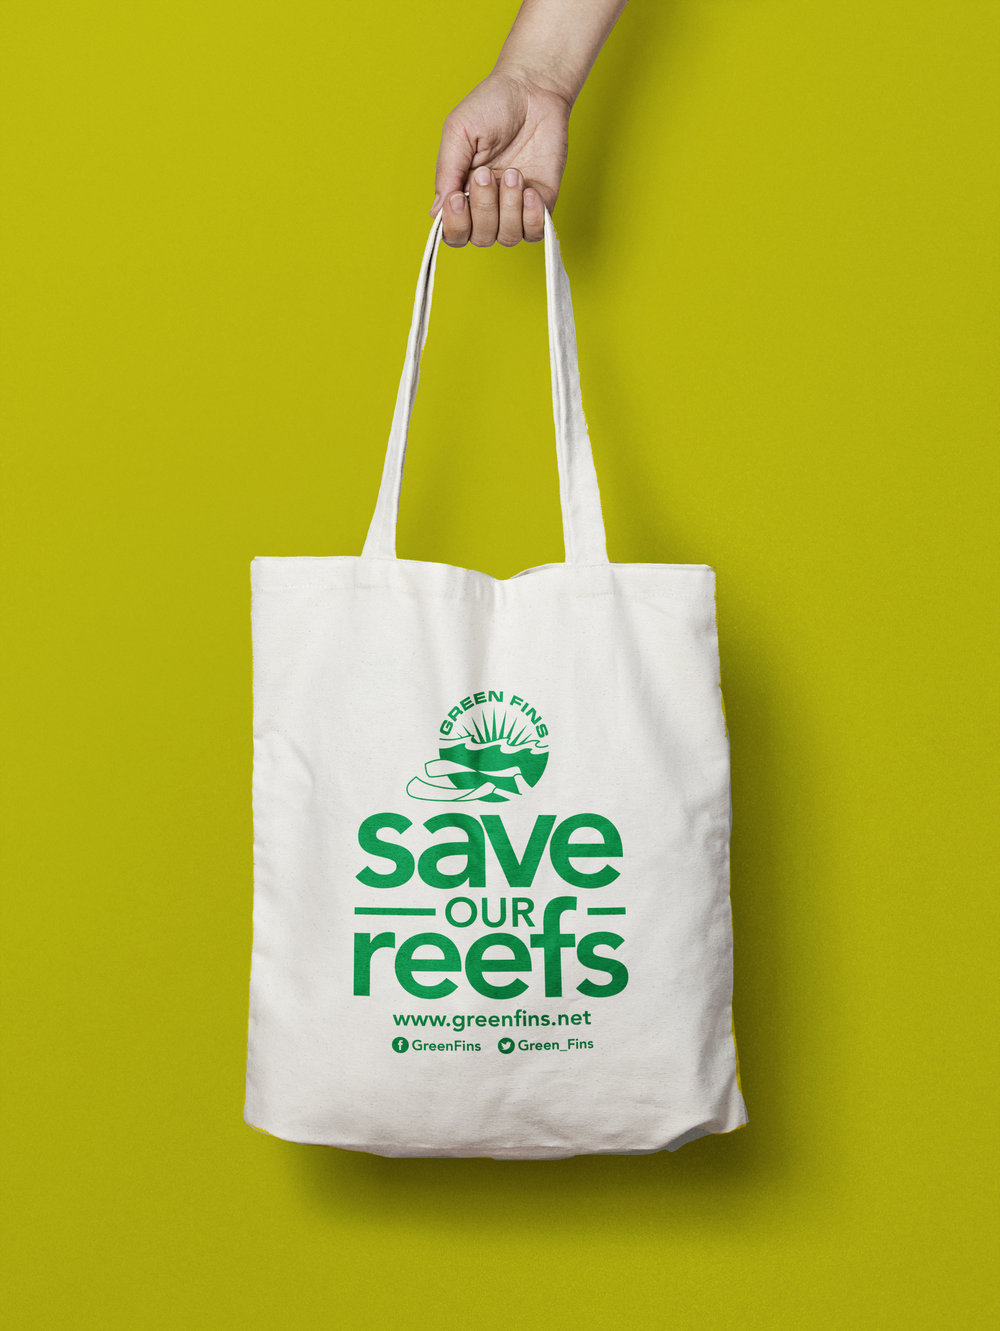 The Green Fins tote bag.